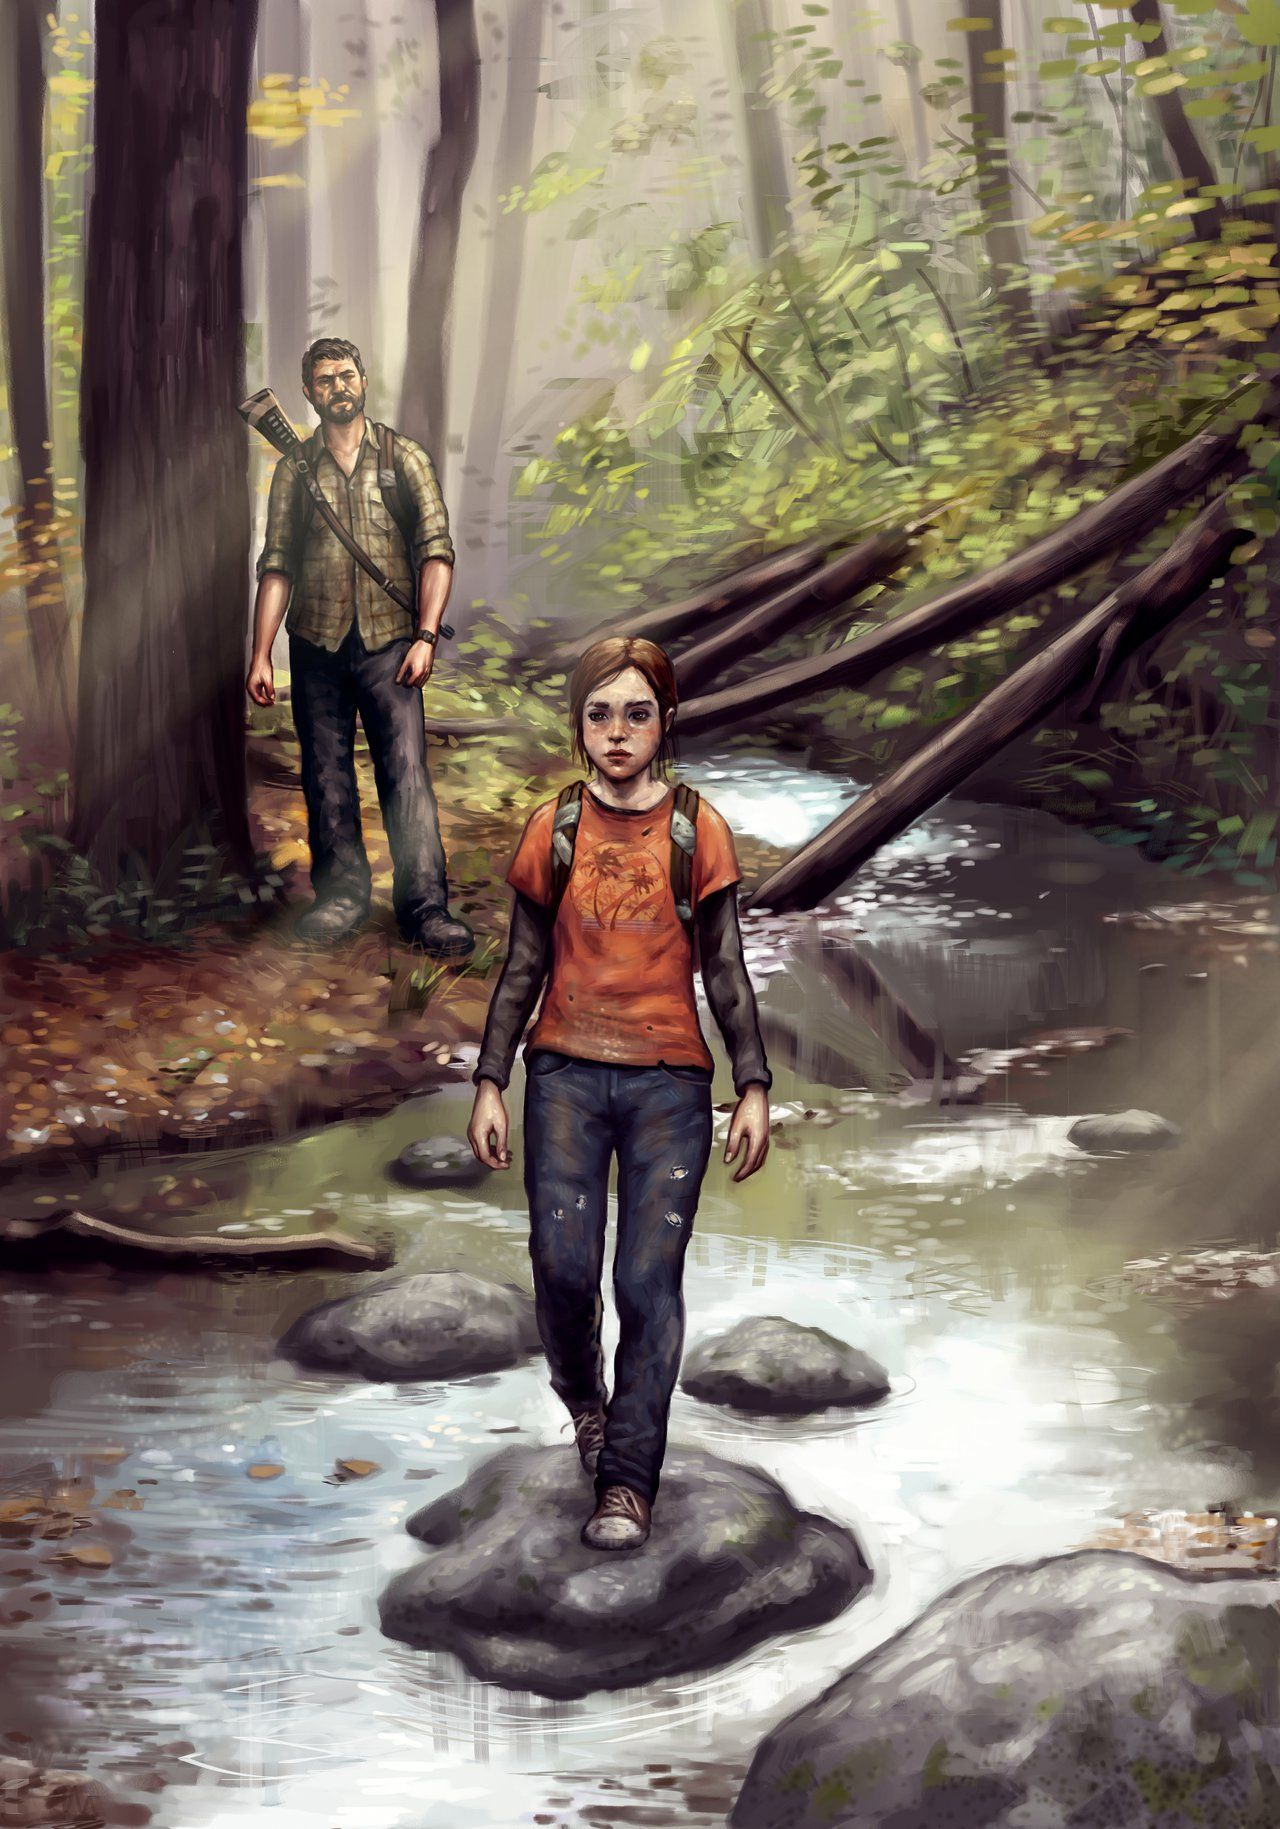 The Last Of Us Concept Art By Danielkarlsson On Deviantart The Last Of Us Concept Art Edge Of The Universe